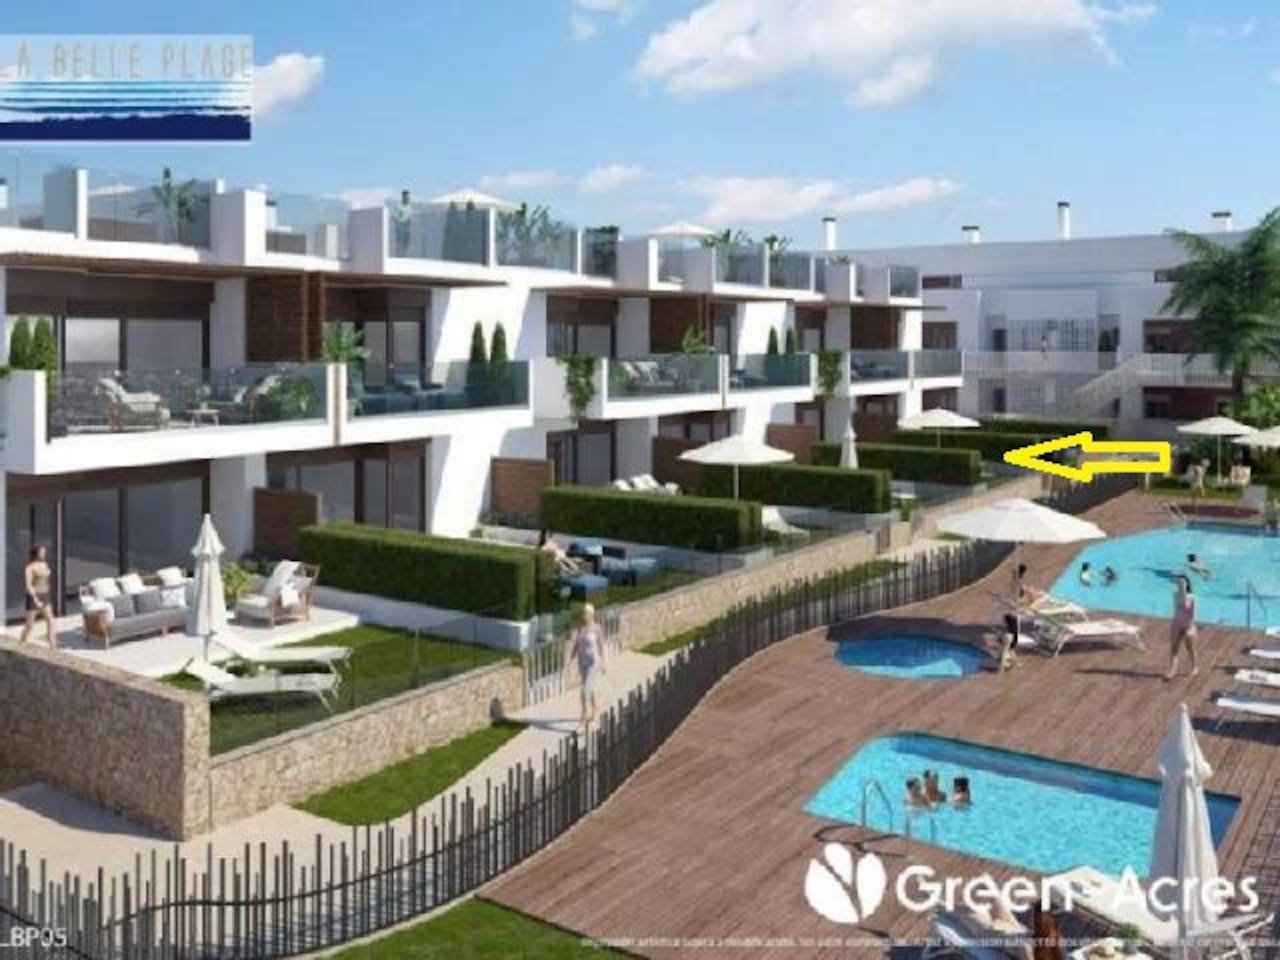 Communal pool and garden. There are 3 pools: large pool, toddlers' pool and Jacuzzi tub.